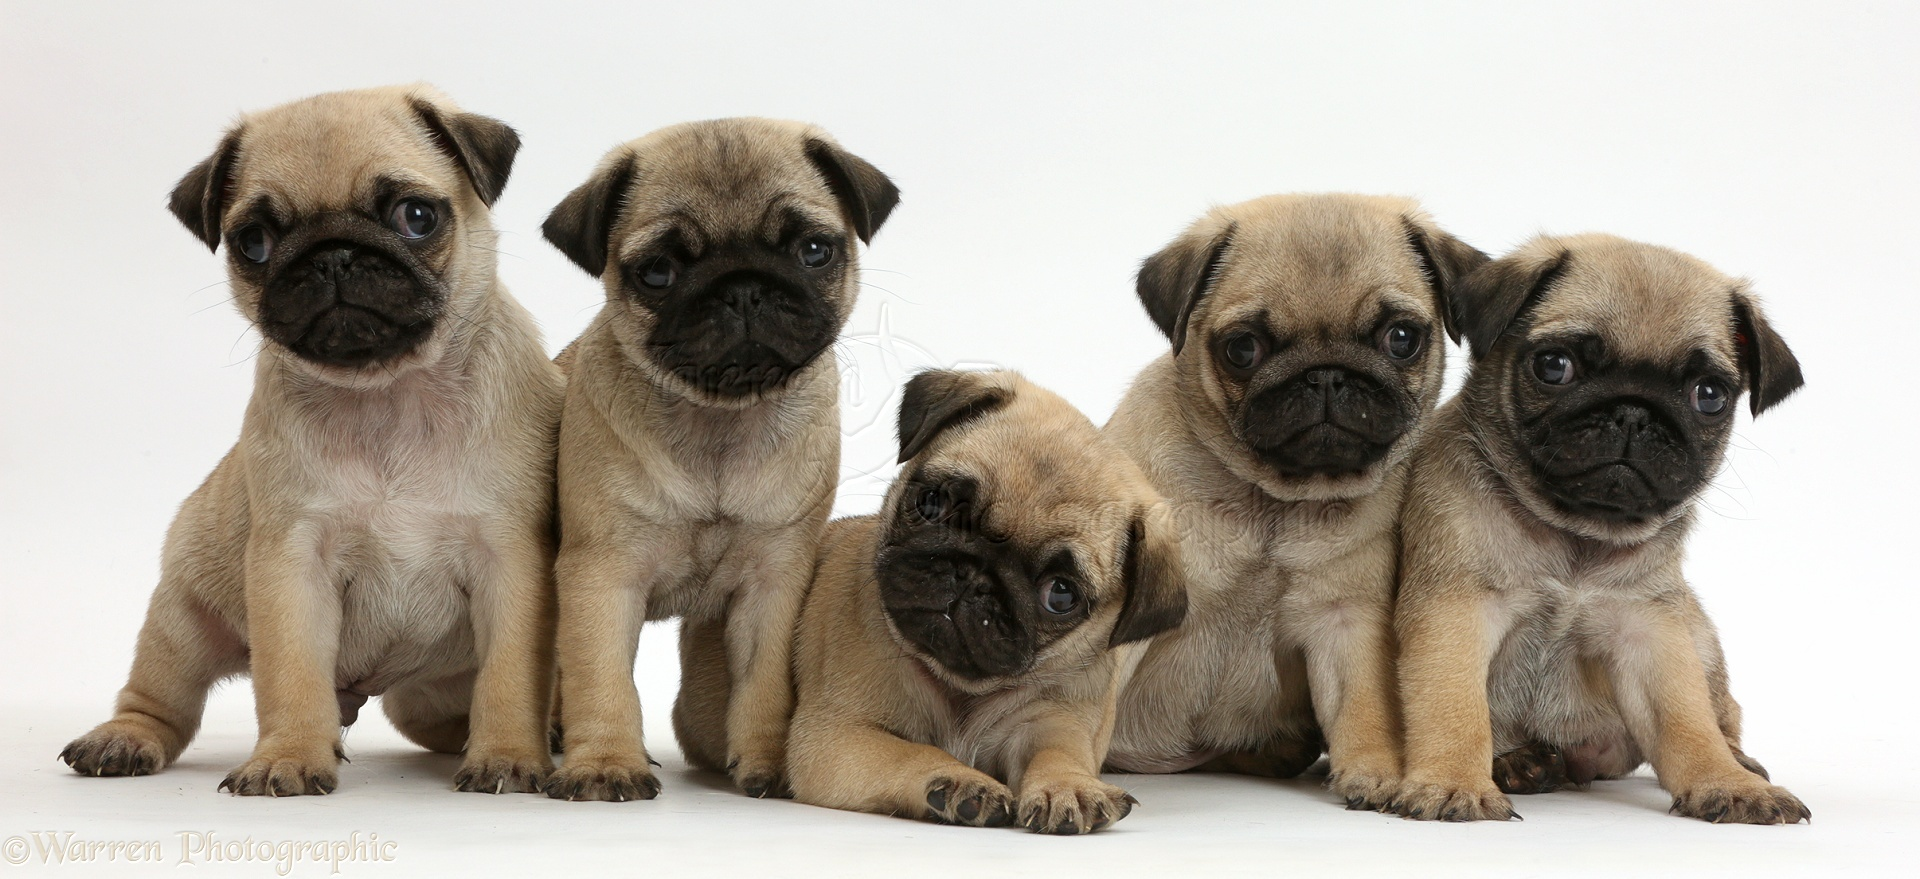 Cute Dog Pictures For Wallpaper Dogs Five Pug Puppies In A Row Photo Wp41995